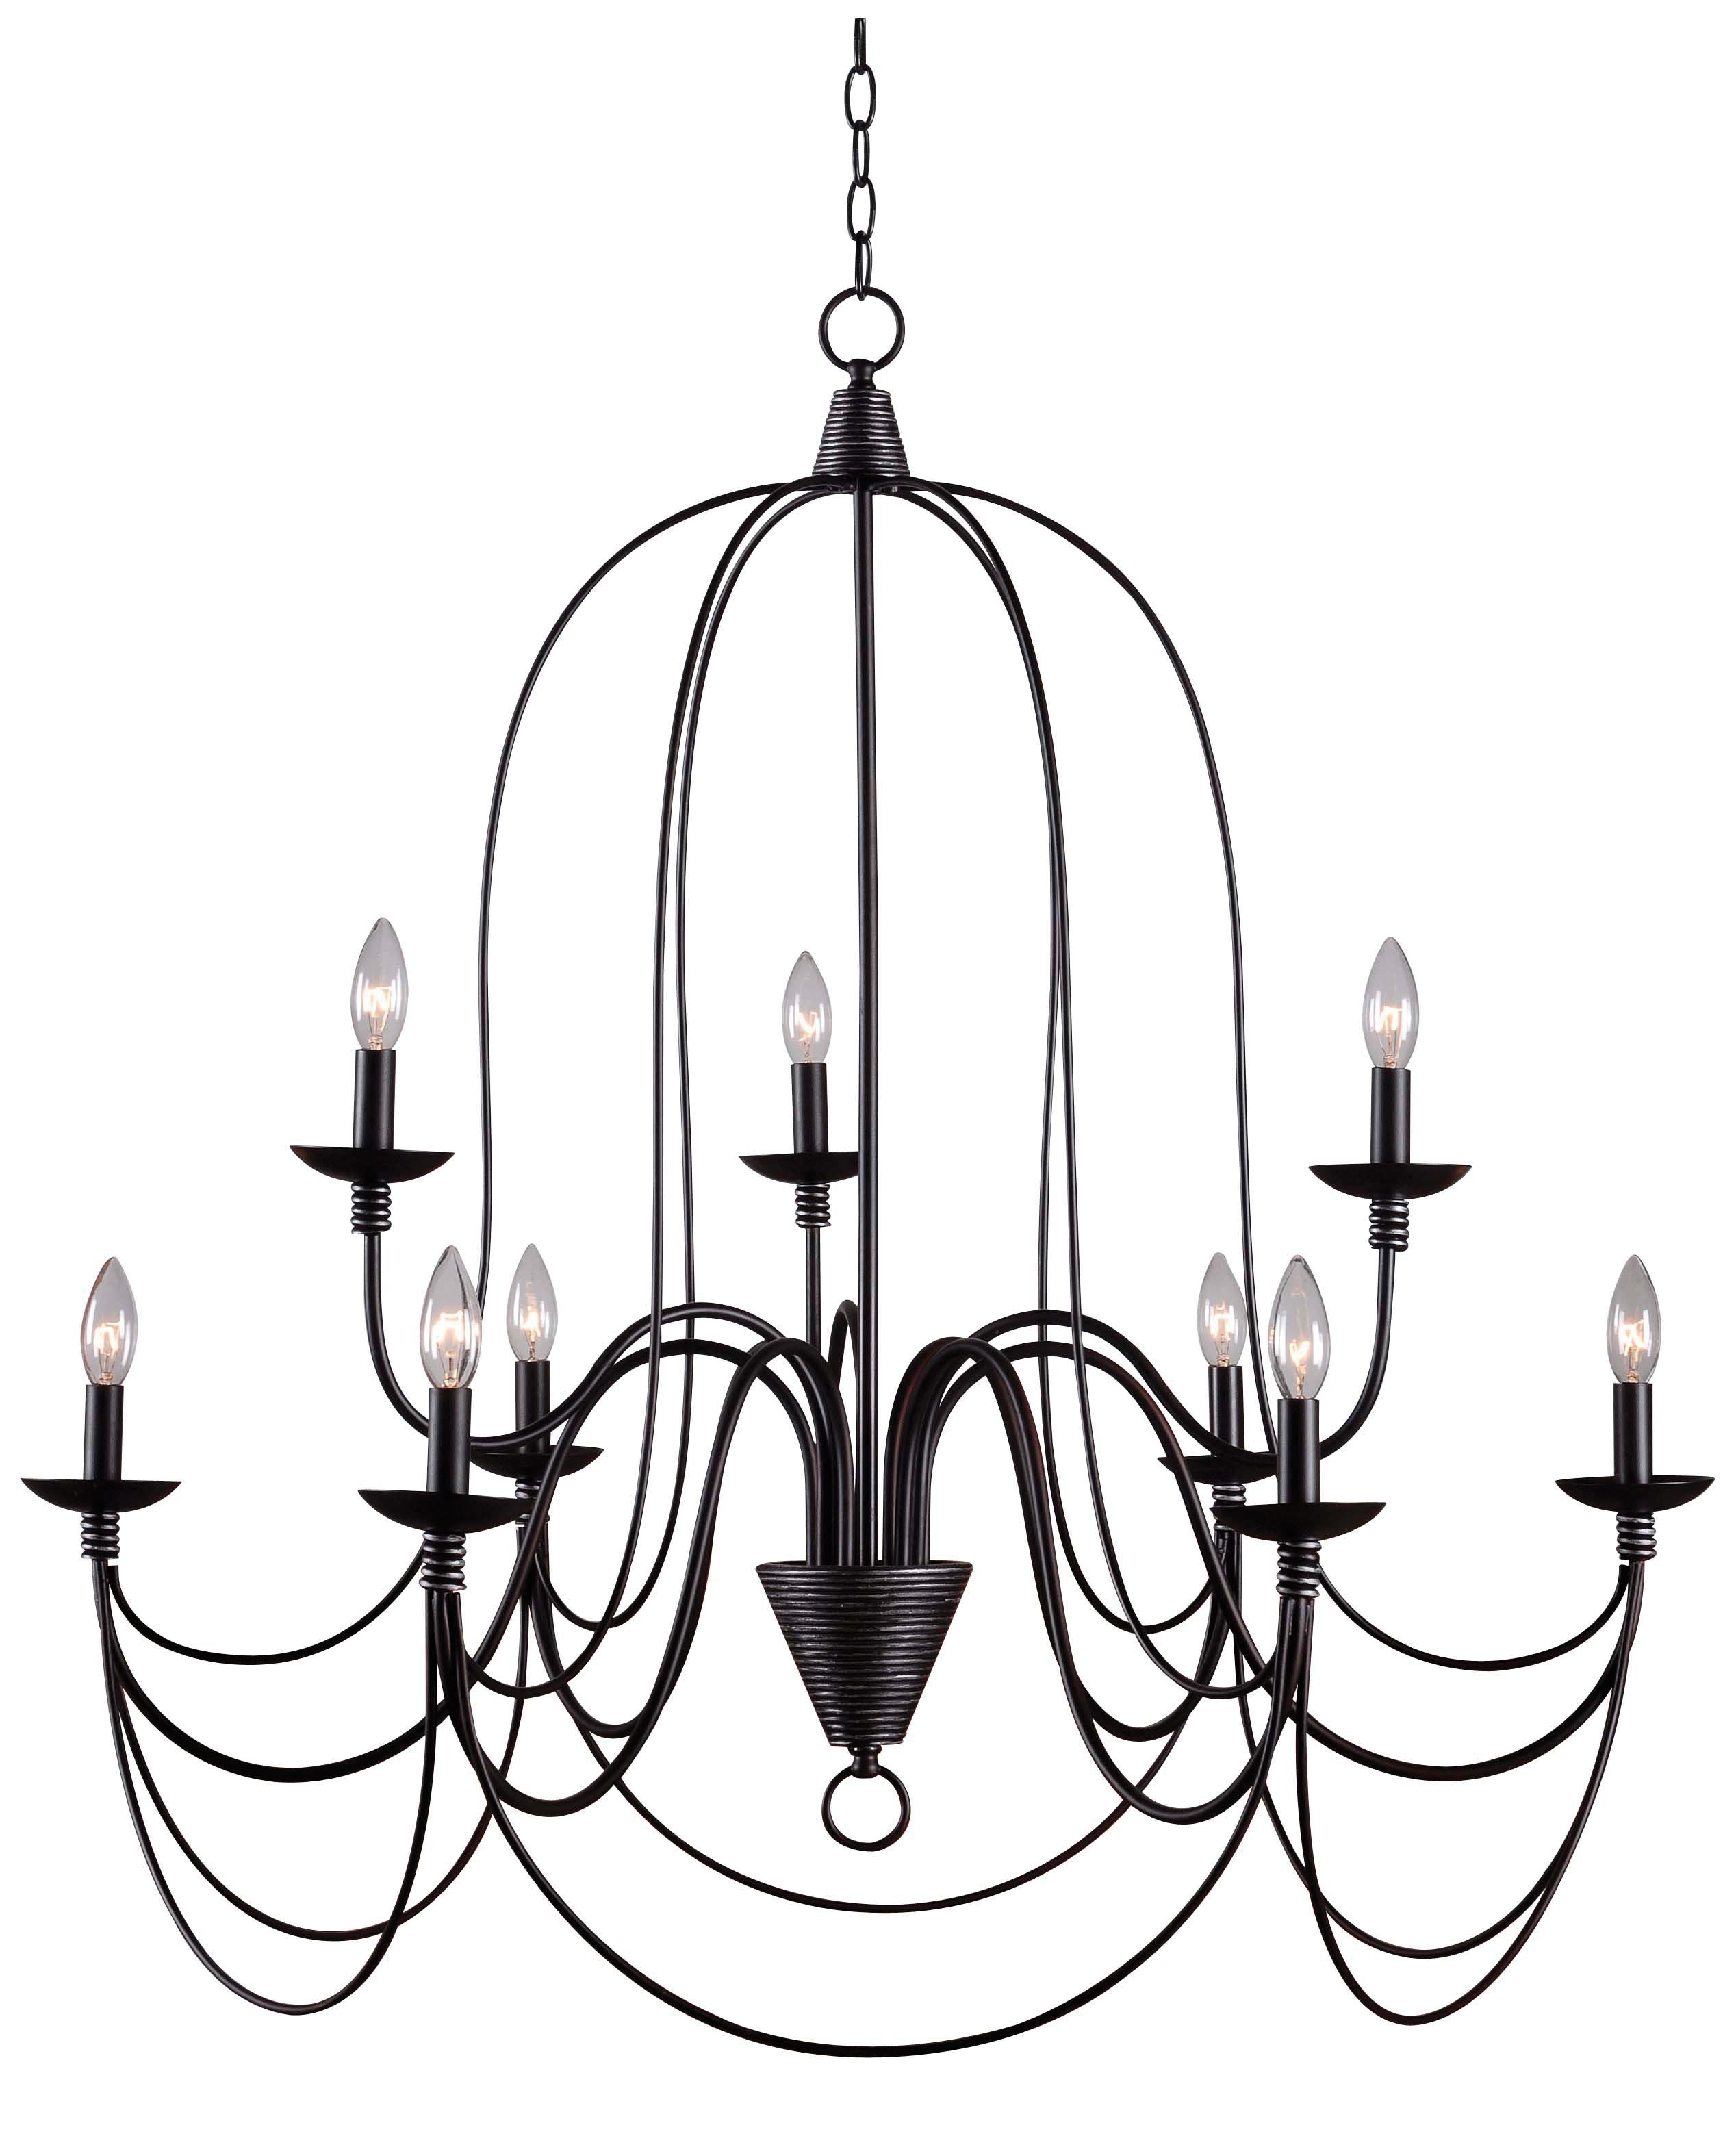 Giverny 9 Light Candle Style Chandeliers With Popular Kollman 9 Light Candle Style Chandelier (View 8 of 20)